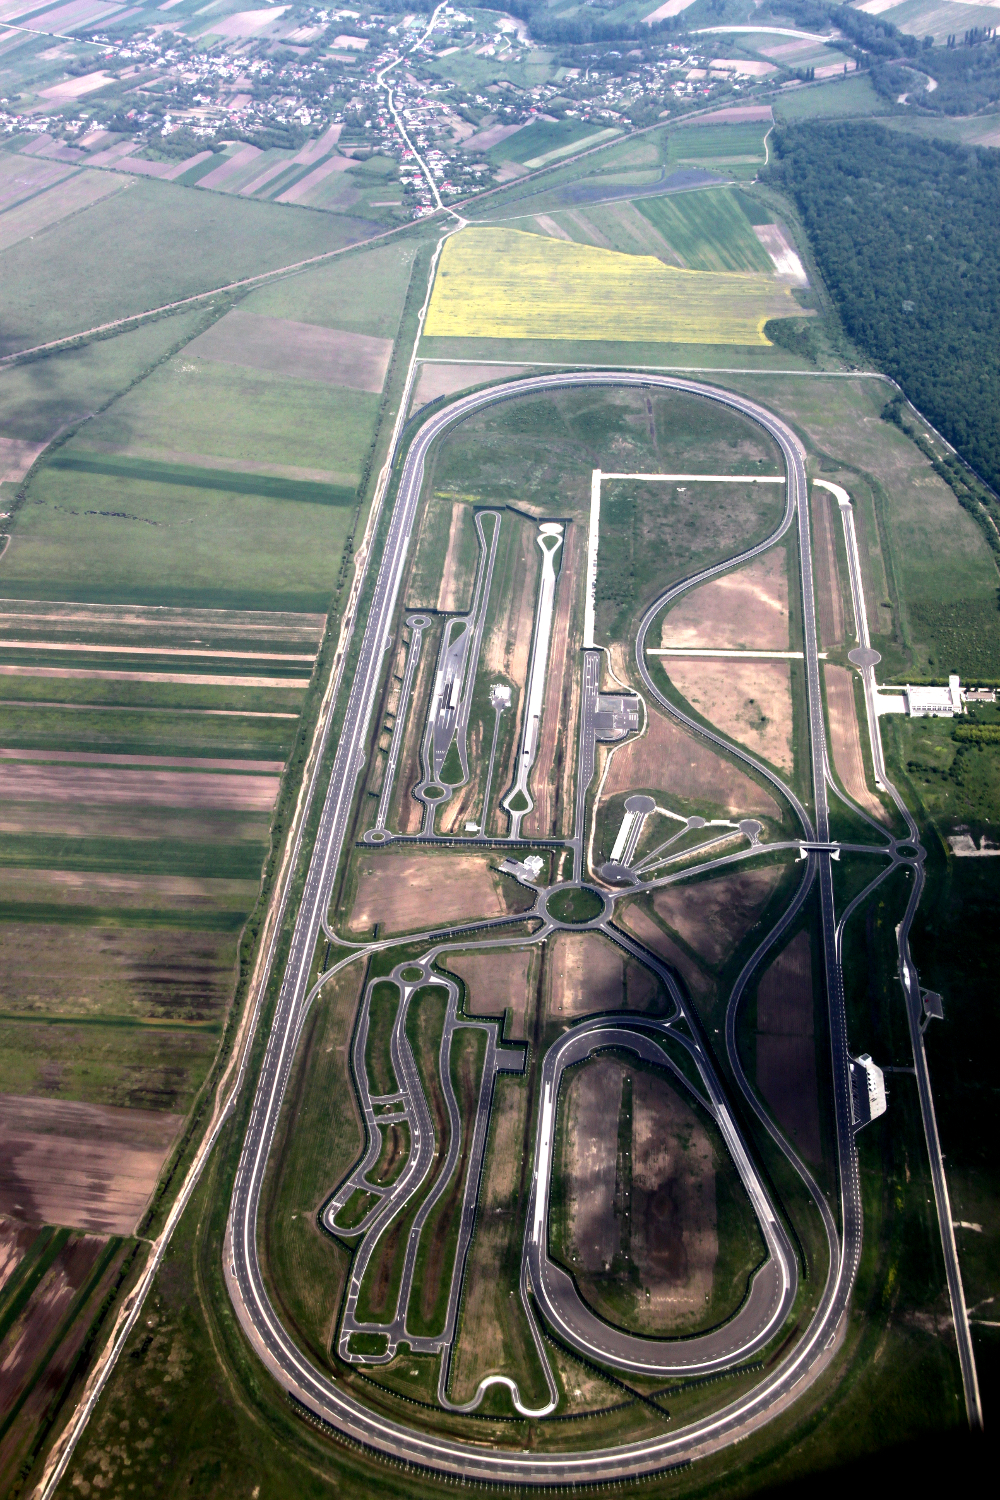 Dacia/Renault's test race track in Titu, Romania as seen from the plane